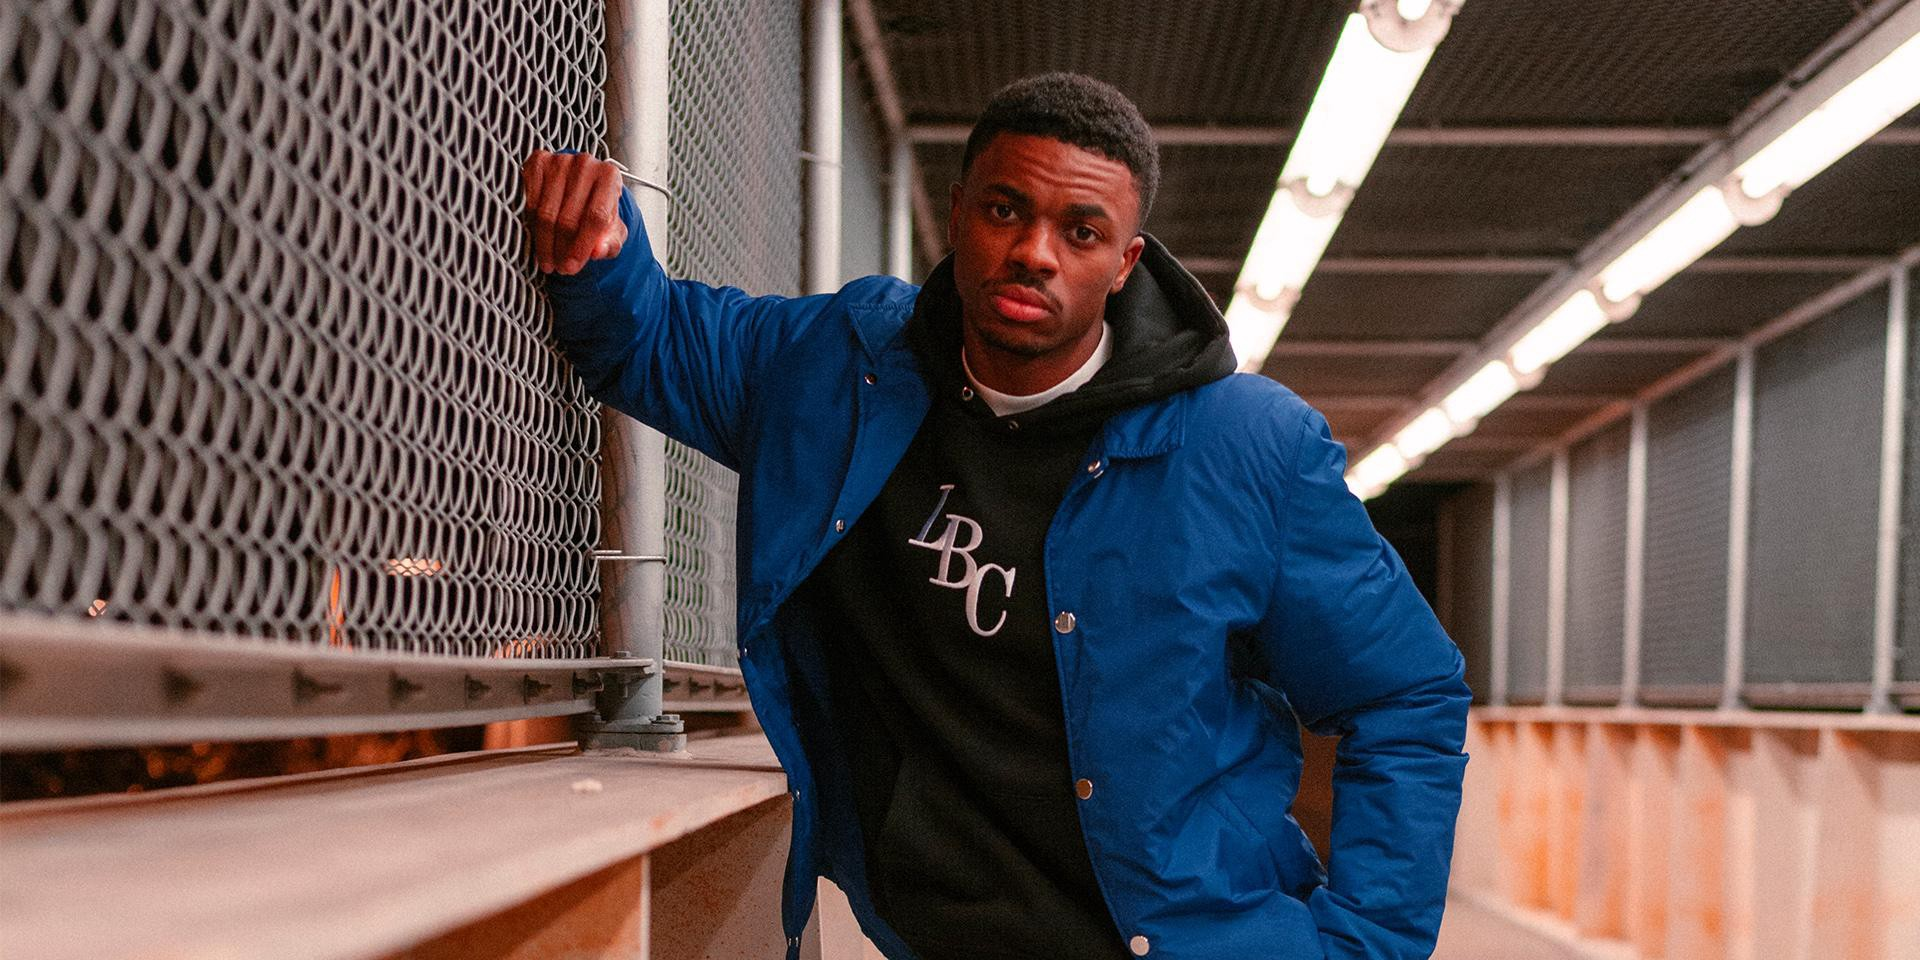 From Gangsta Rap to Art Rap: Vince Staples is a Different